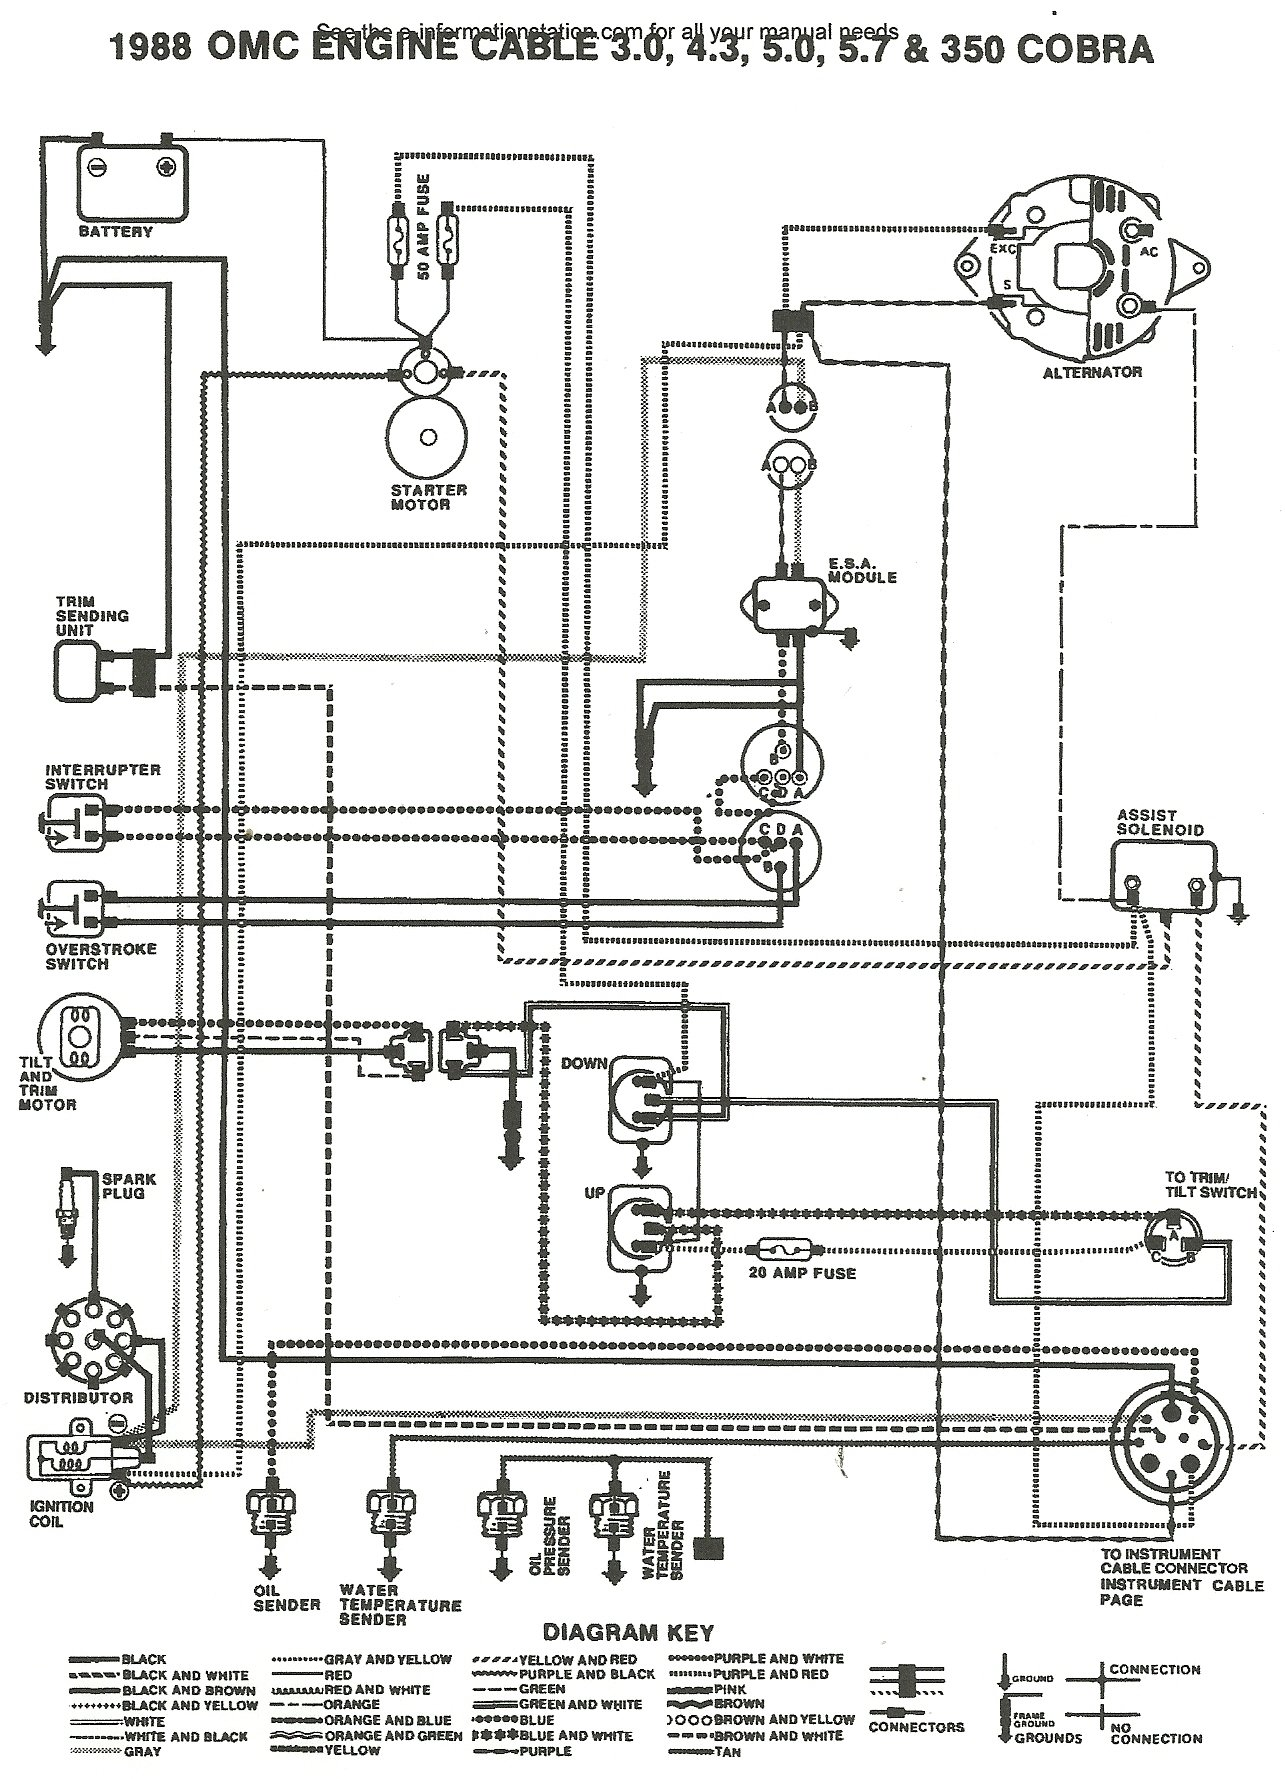 4 3 Omc Cobra Ignition Wiring Diagram